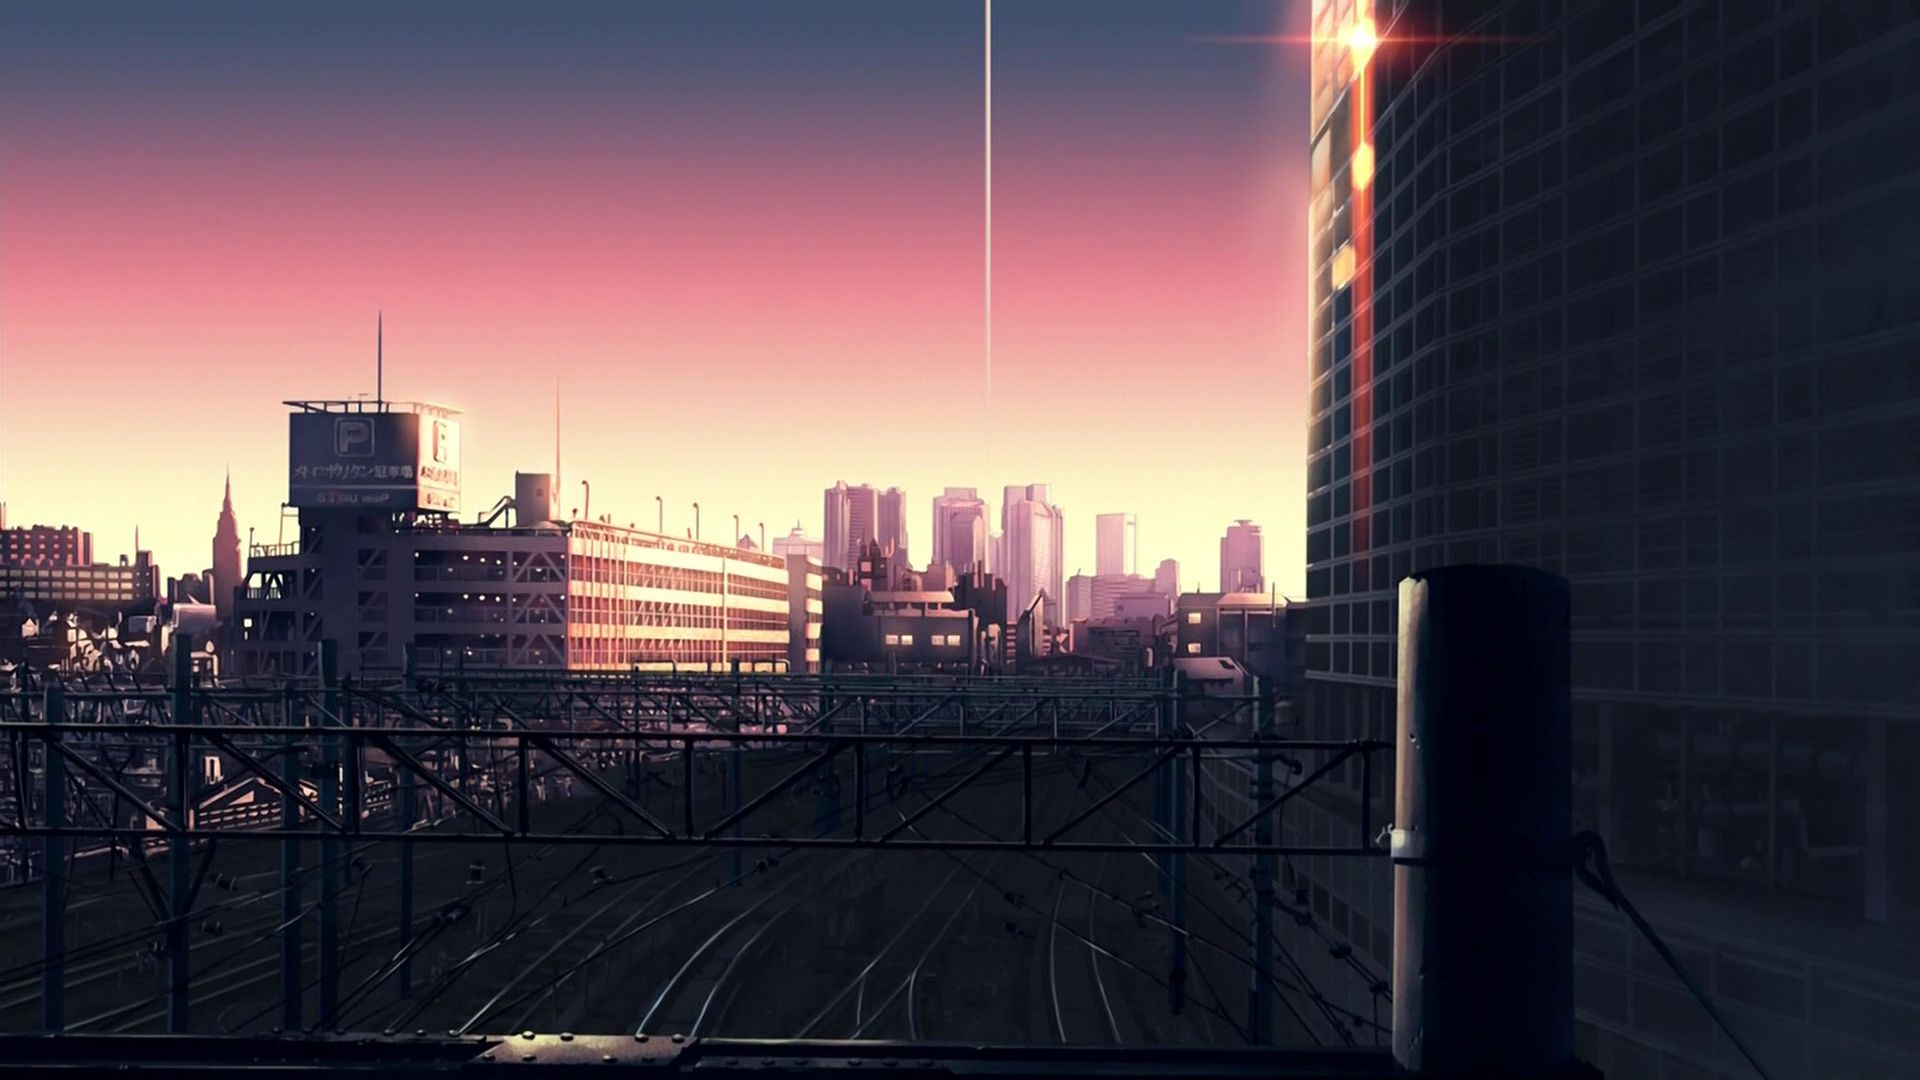 Cityscape City Town Anime Scenery Background Wallpaper